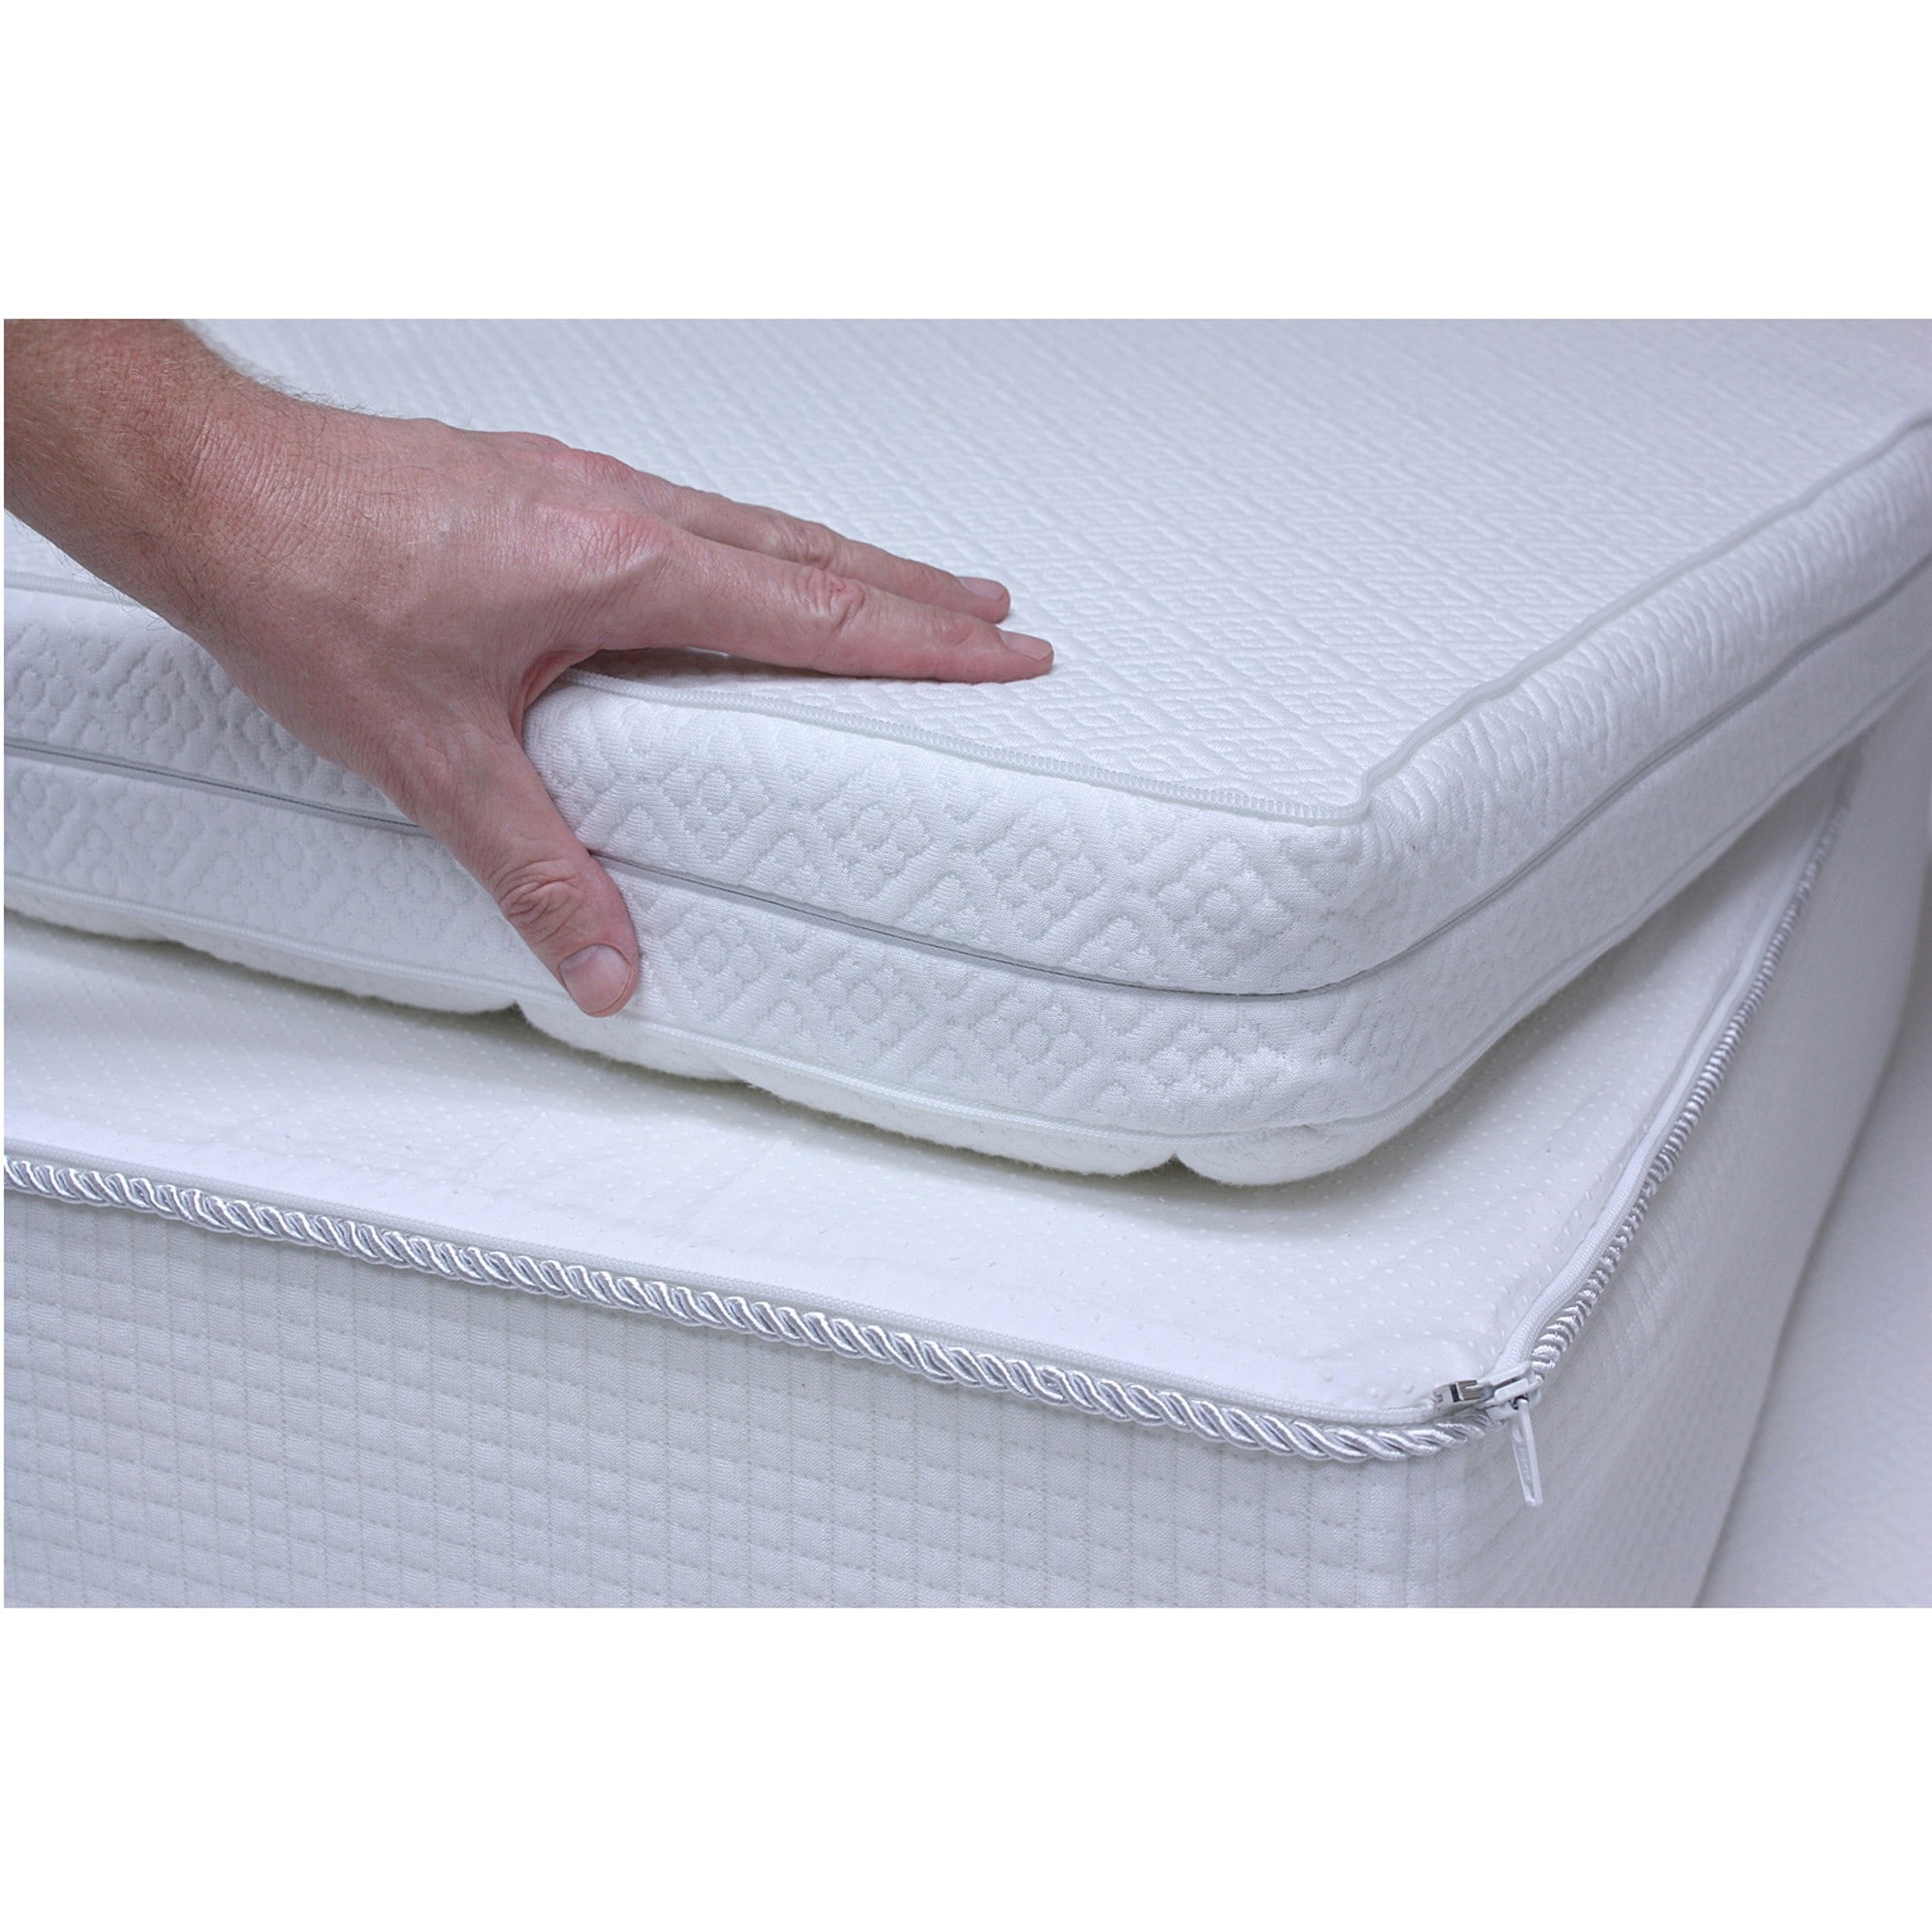 12 Inch Top Reversible Medium Firm or Soft King Size Memory Foam